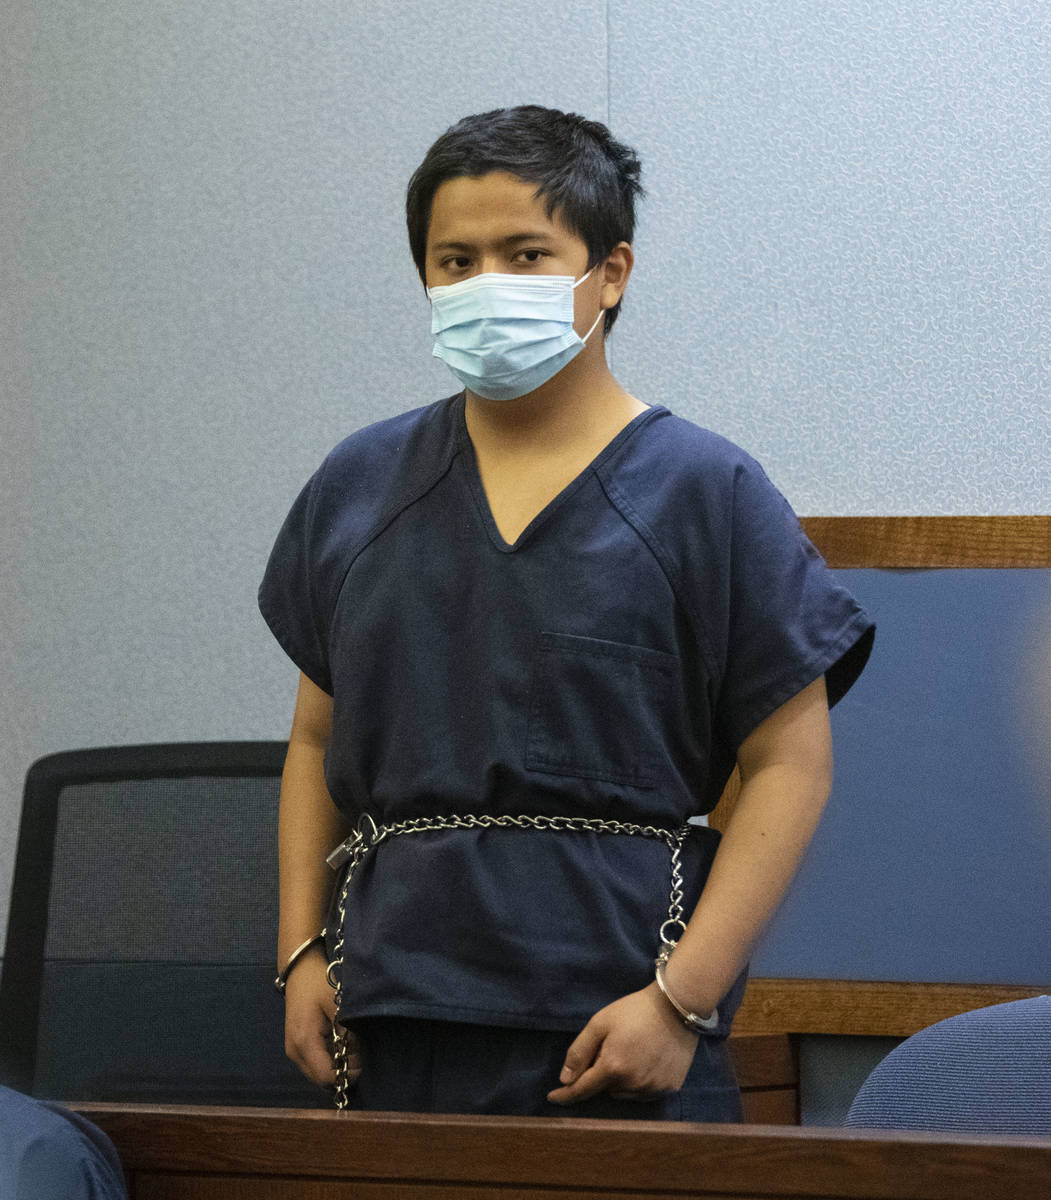 Aaron Guerrero, charged in the killing of Daniel Halseth, appears in court at the Regional Just ...